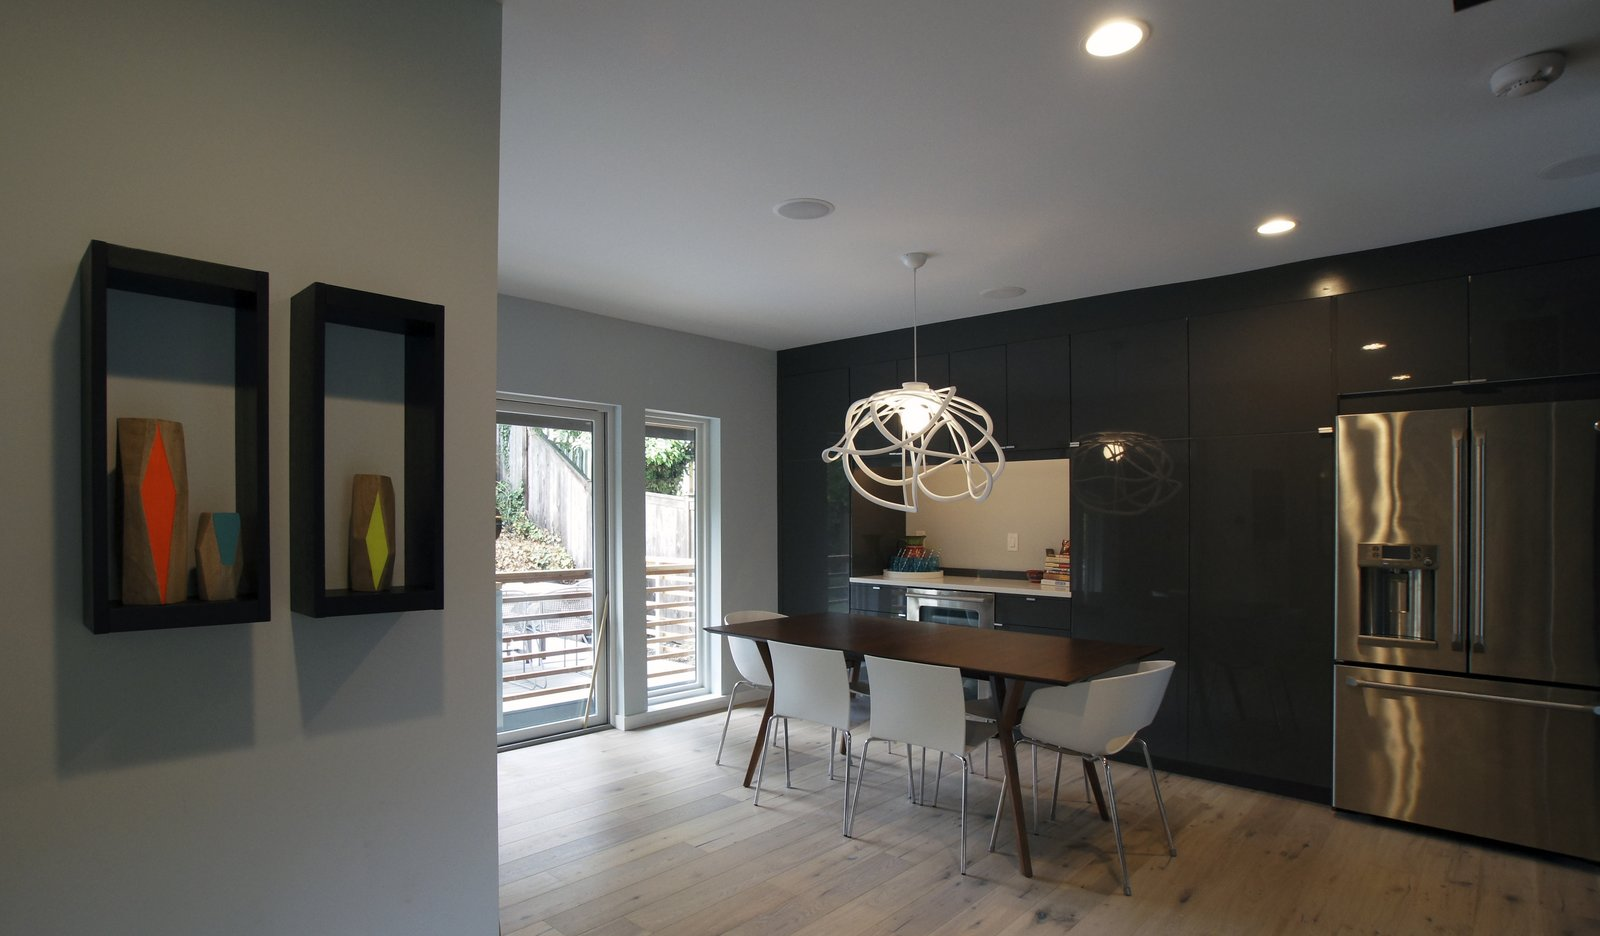 The dining room is essentially an extension of the kitchen, providing ample space for entertaining without feeling too cavernous when the family is eating without company.